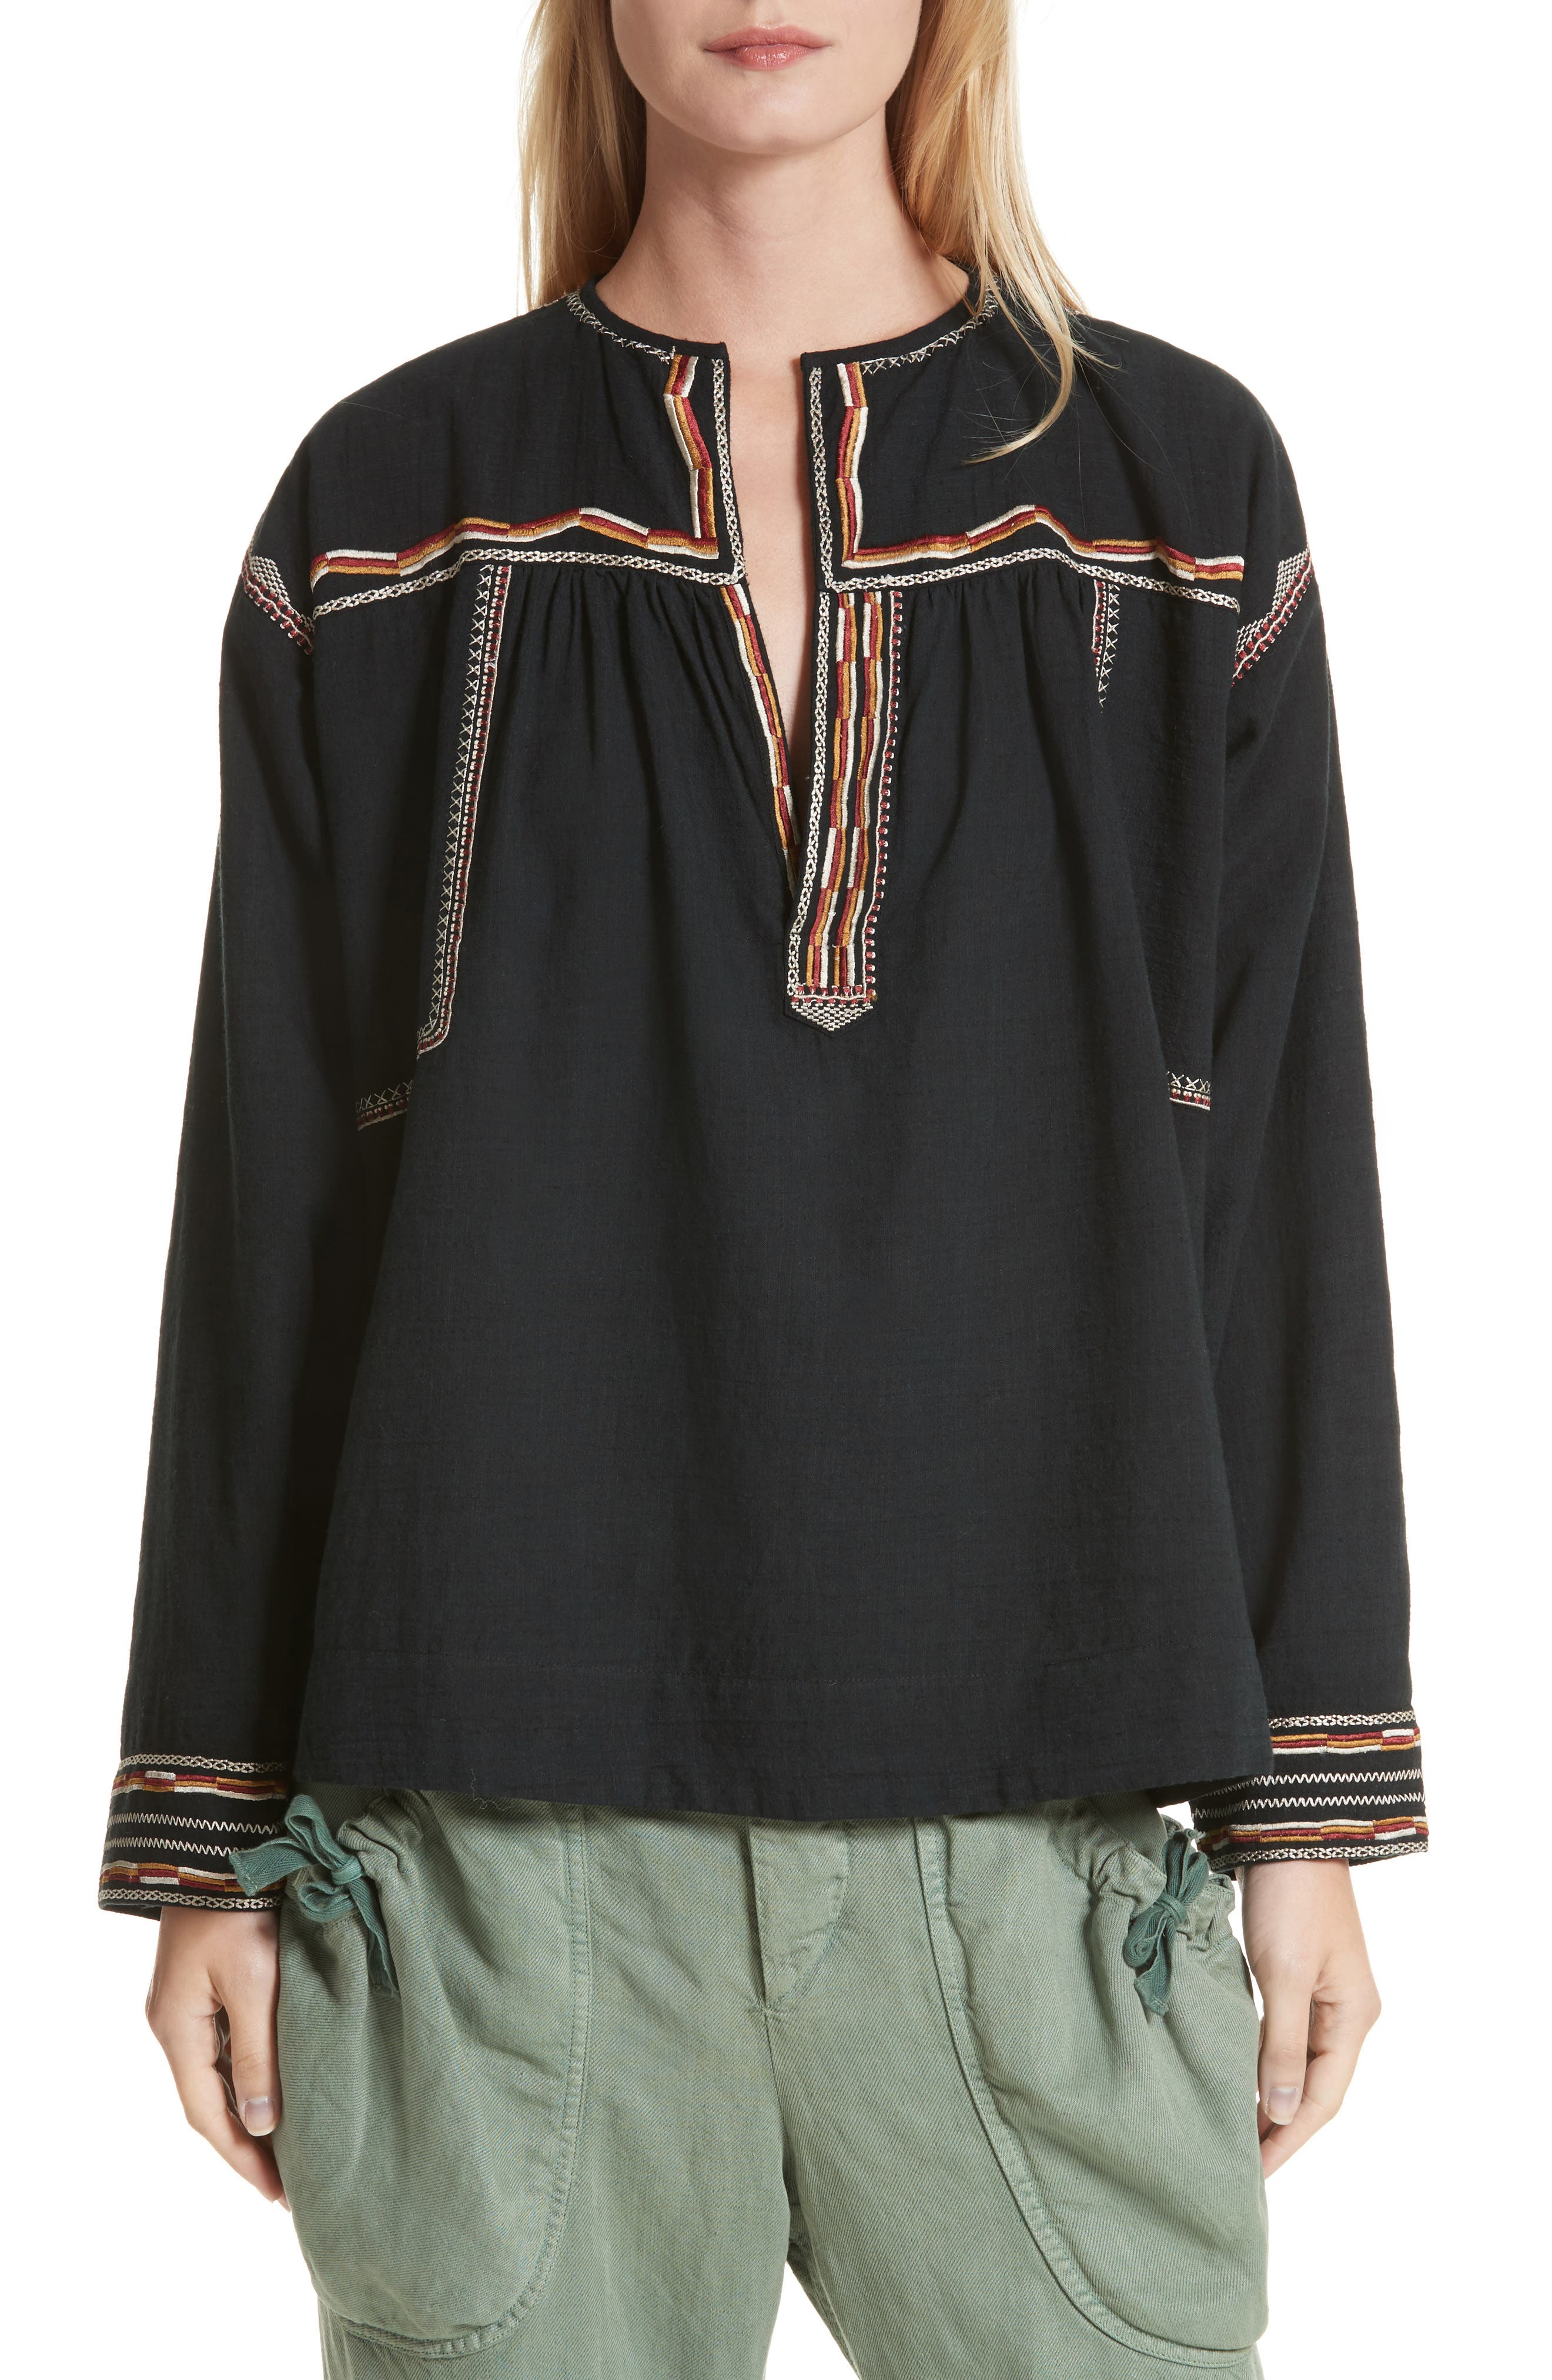 Alternate Image 1 Selected - Isabel Marant Étoile Blicky Embroidered Top